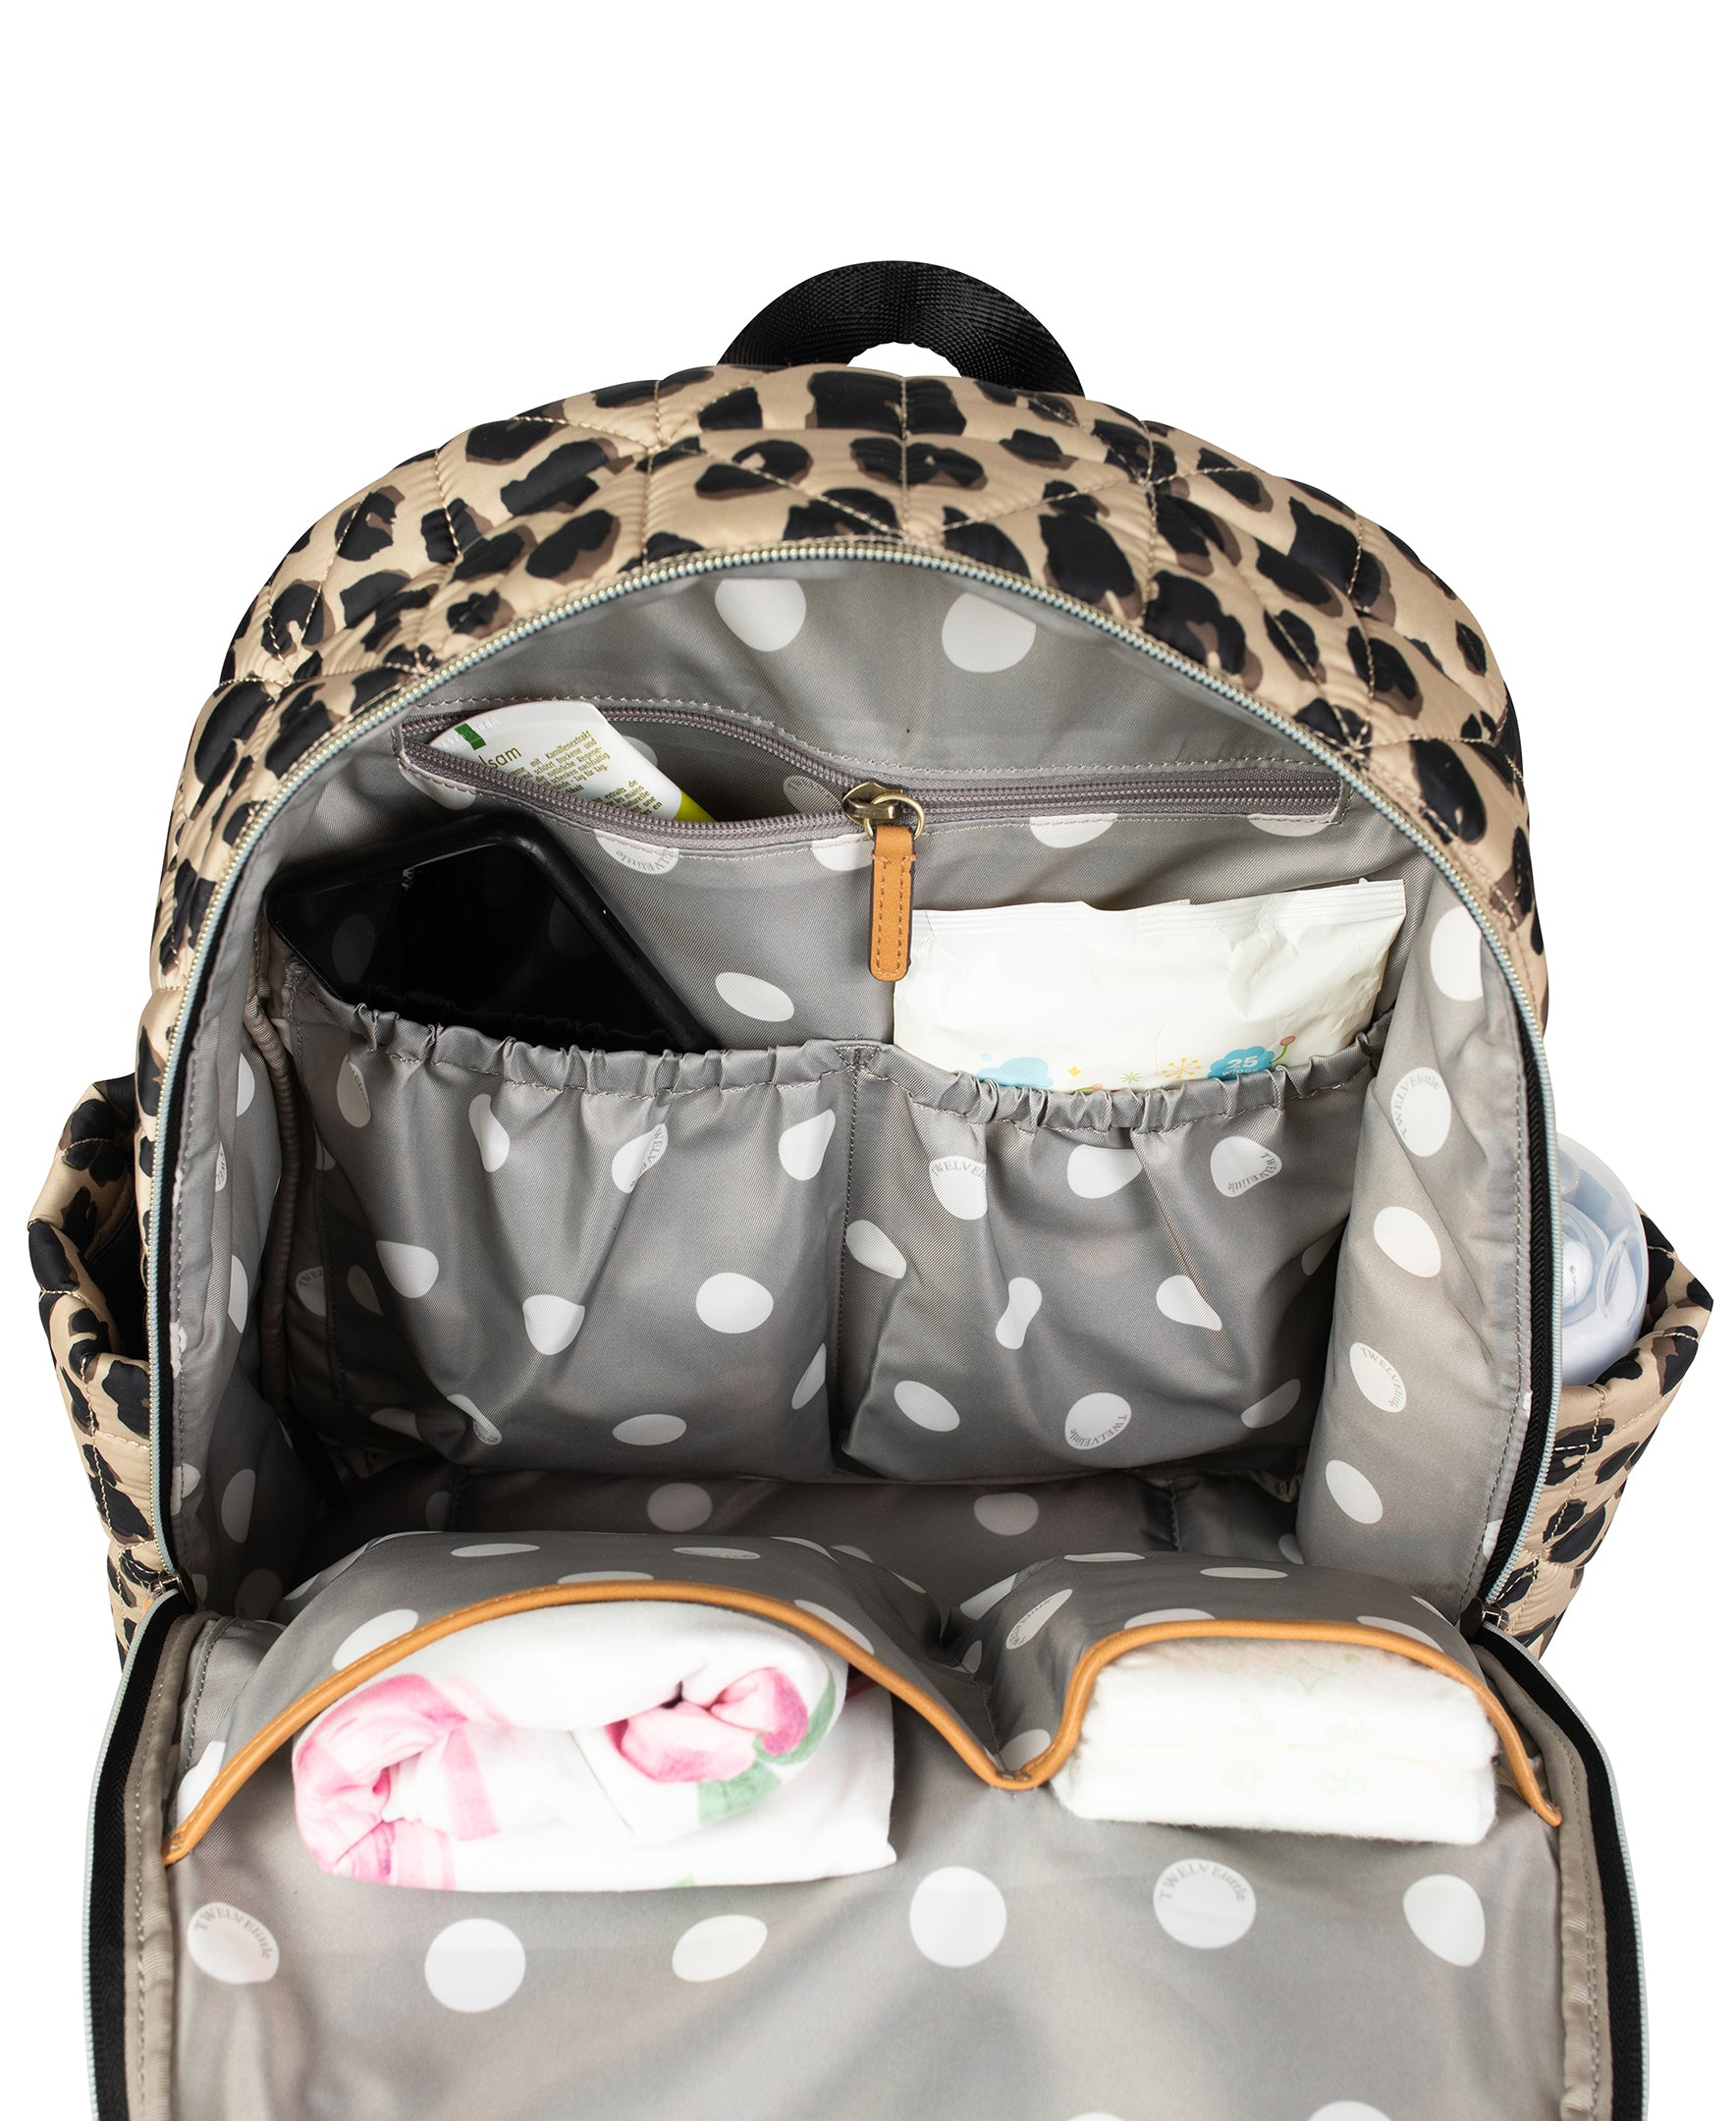 Inside view of leopard companion backpack